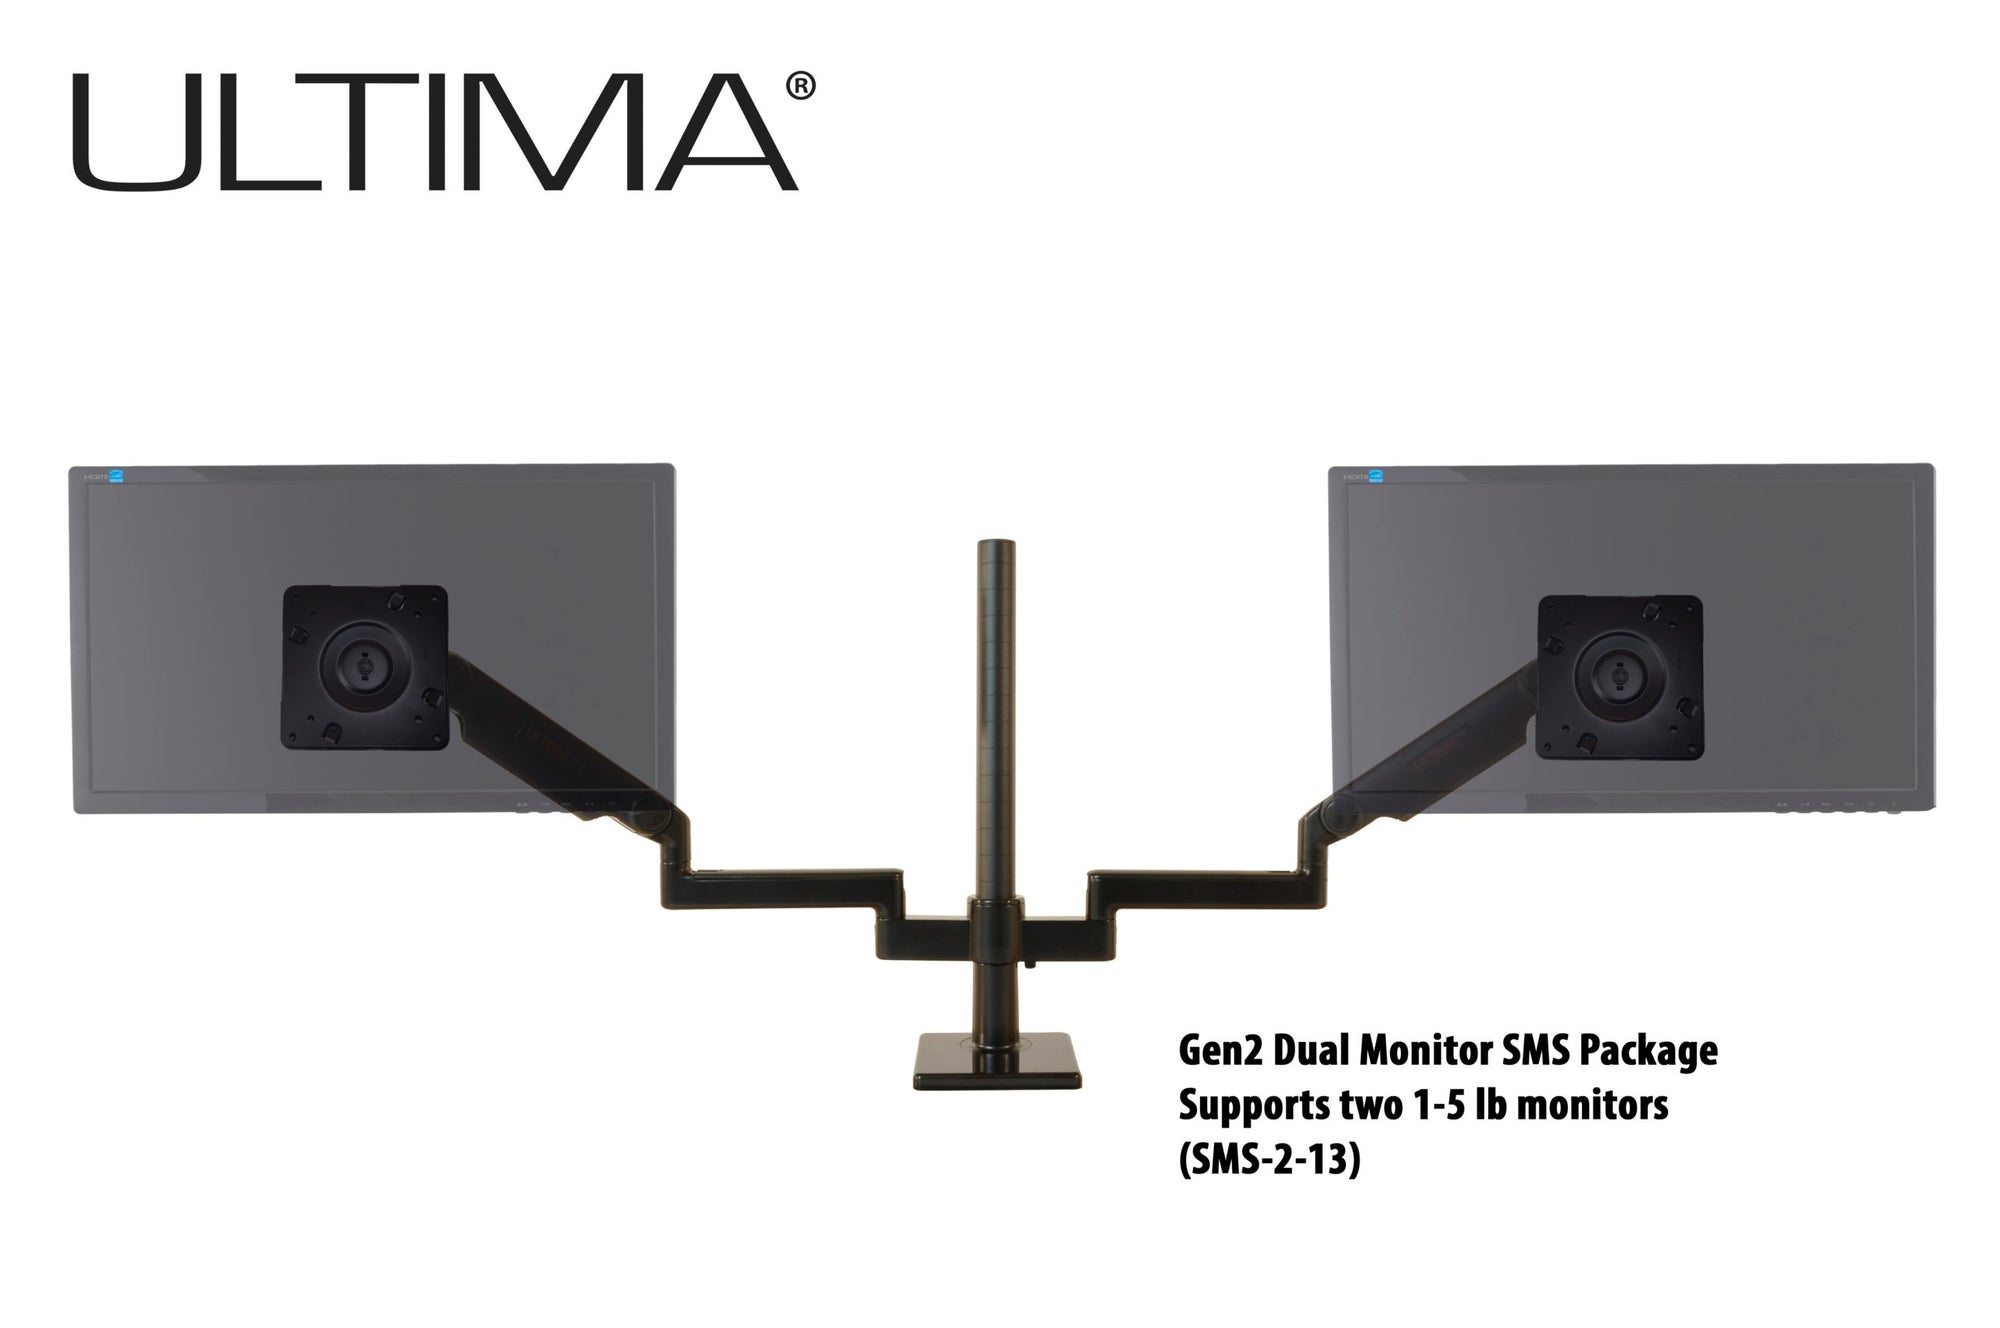 OC White SMS-2-13 & SMS-LD-2-13 Series ProBoom® Ultima® Gen2 Dual Monitor SMS Package - 305broadcast